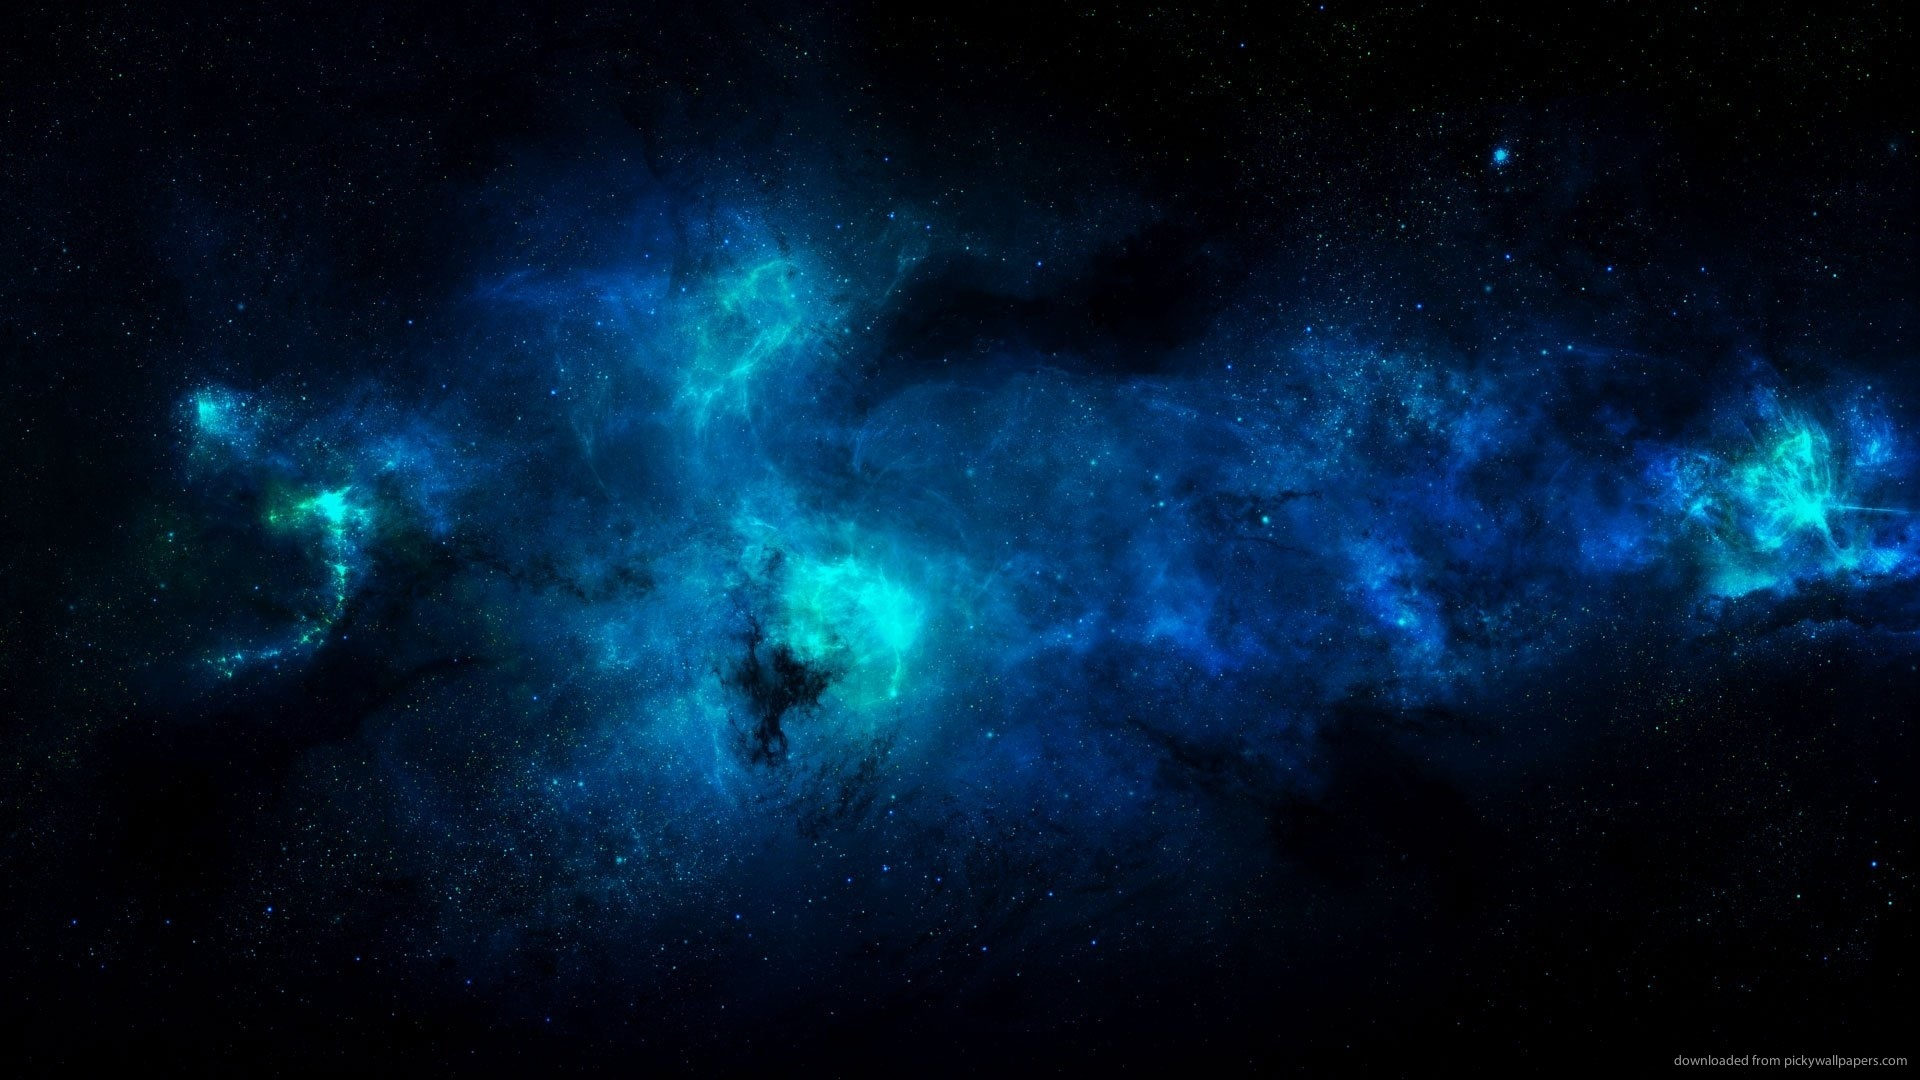 WallpaperUniversitycom Bright Neon Blue Gasses Floating in Space 1920x1080